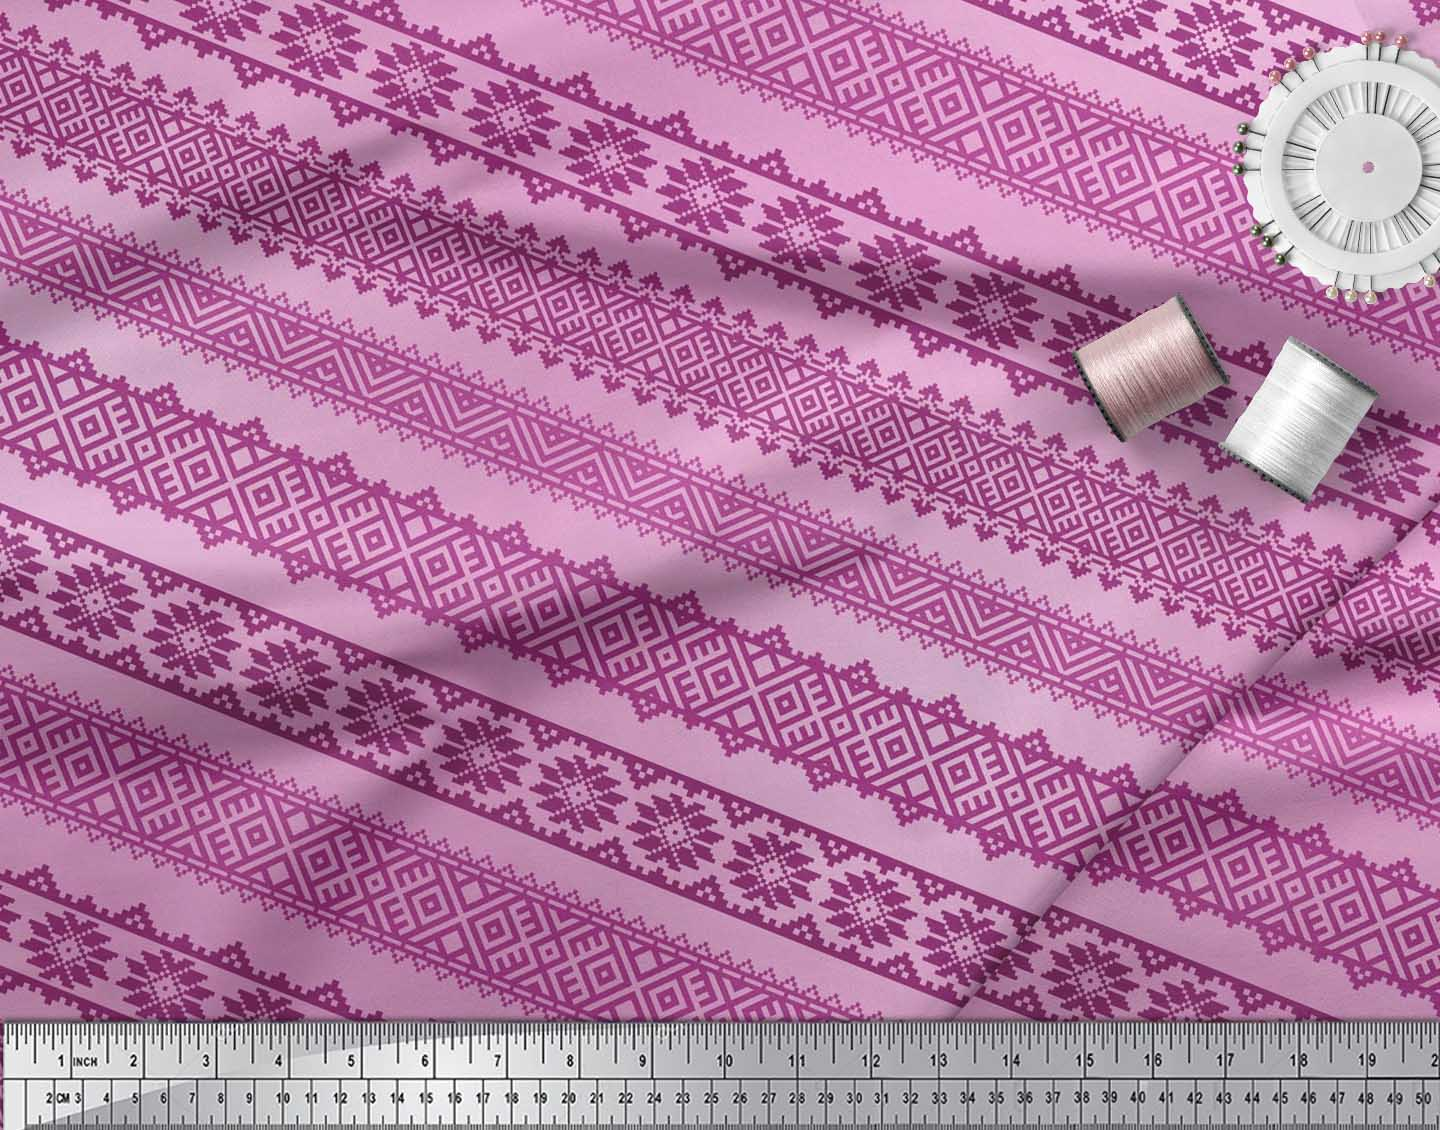 Soimoi-Cotton-Poplin-Fabric-Aztec-Geometric-Printed-Craft-Fabric-JWe thumbnail 4